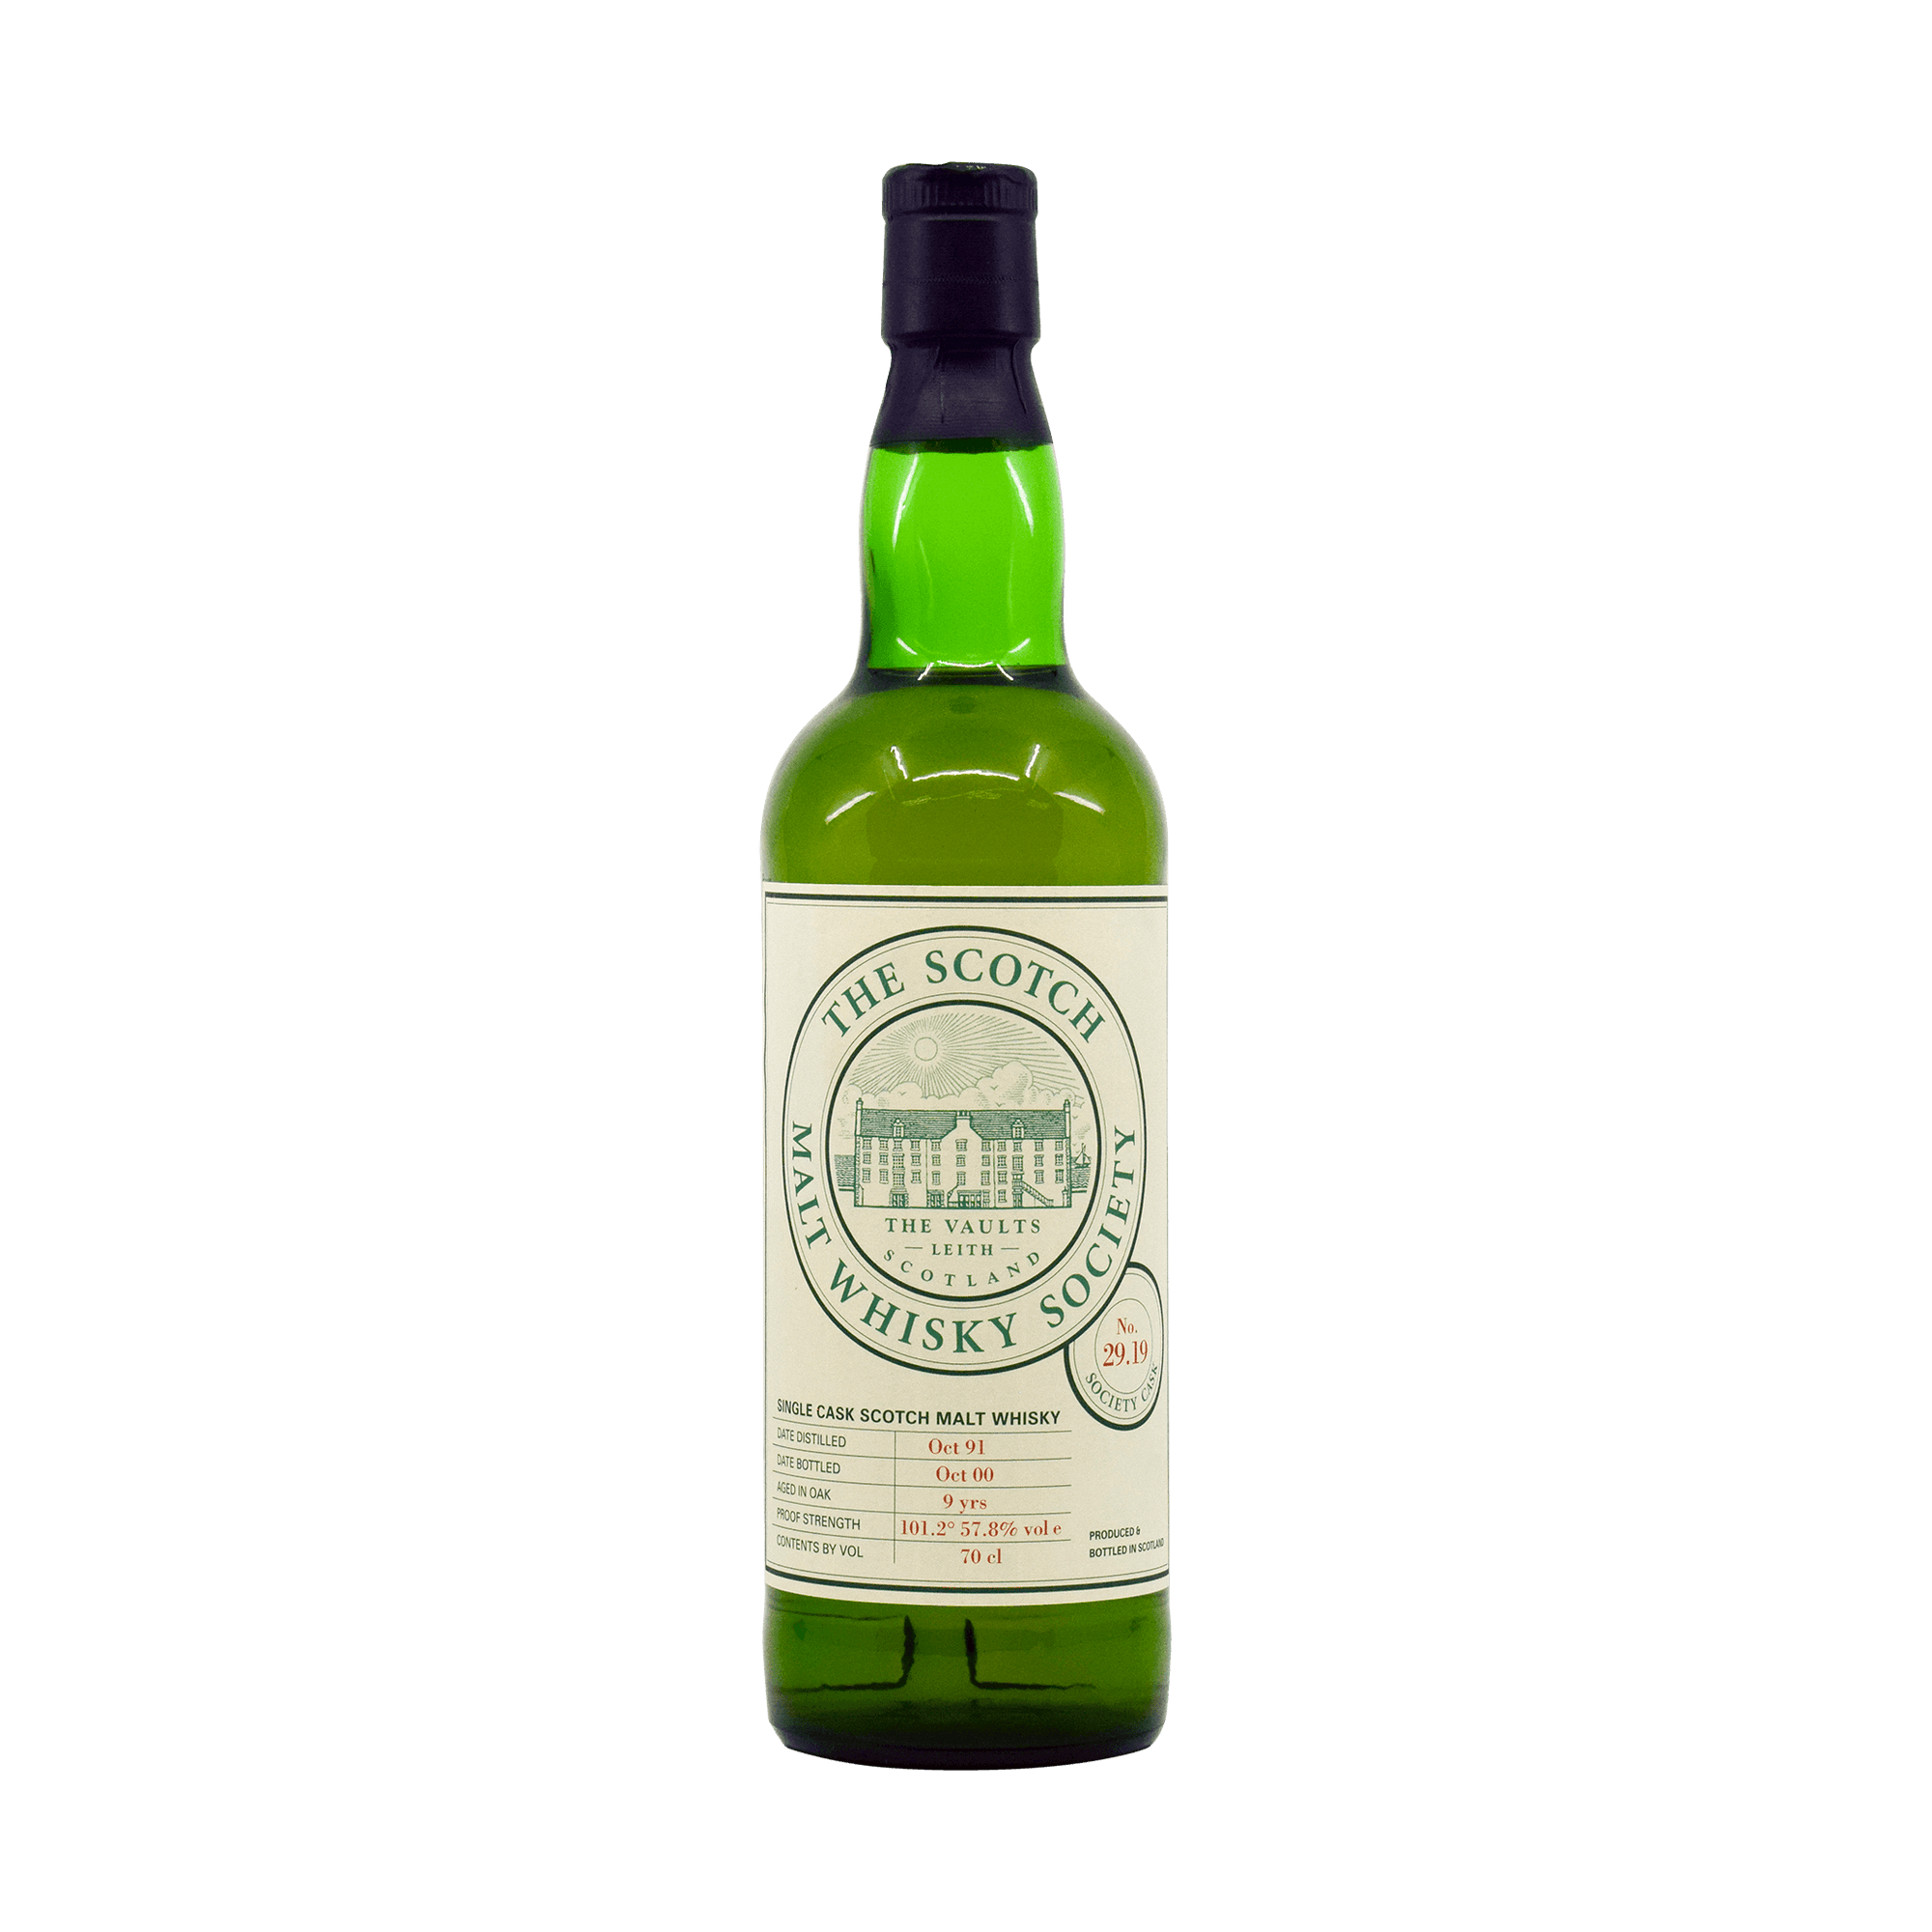 Laphroaig 1991 9 Year Old '29.19' SMWS 57.80% 70cl